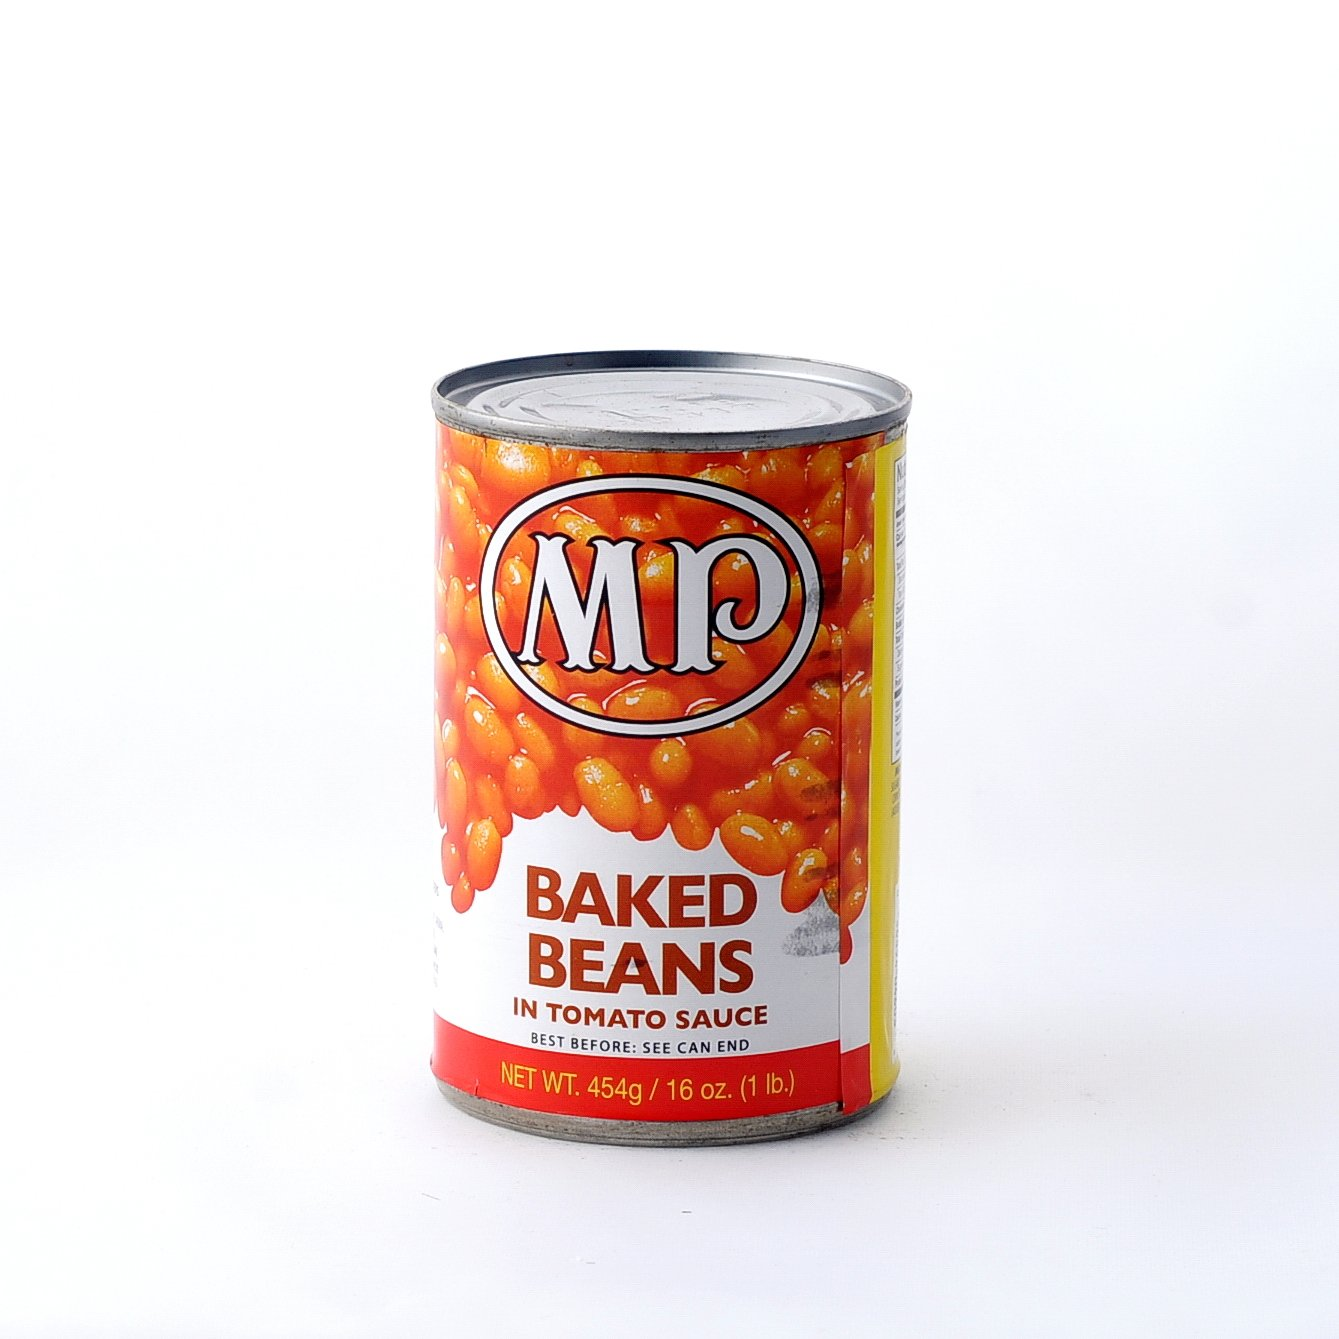 stl>MP Baked Beans, Canned - 15oz